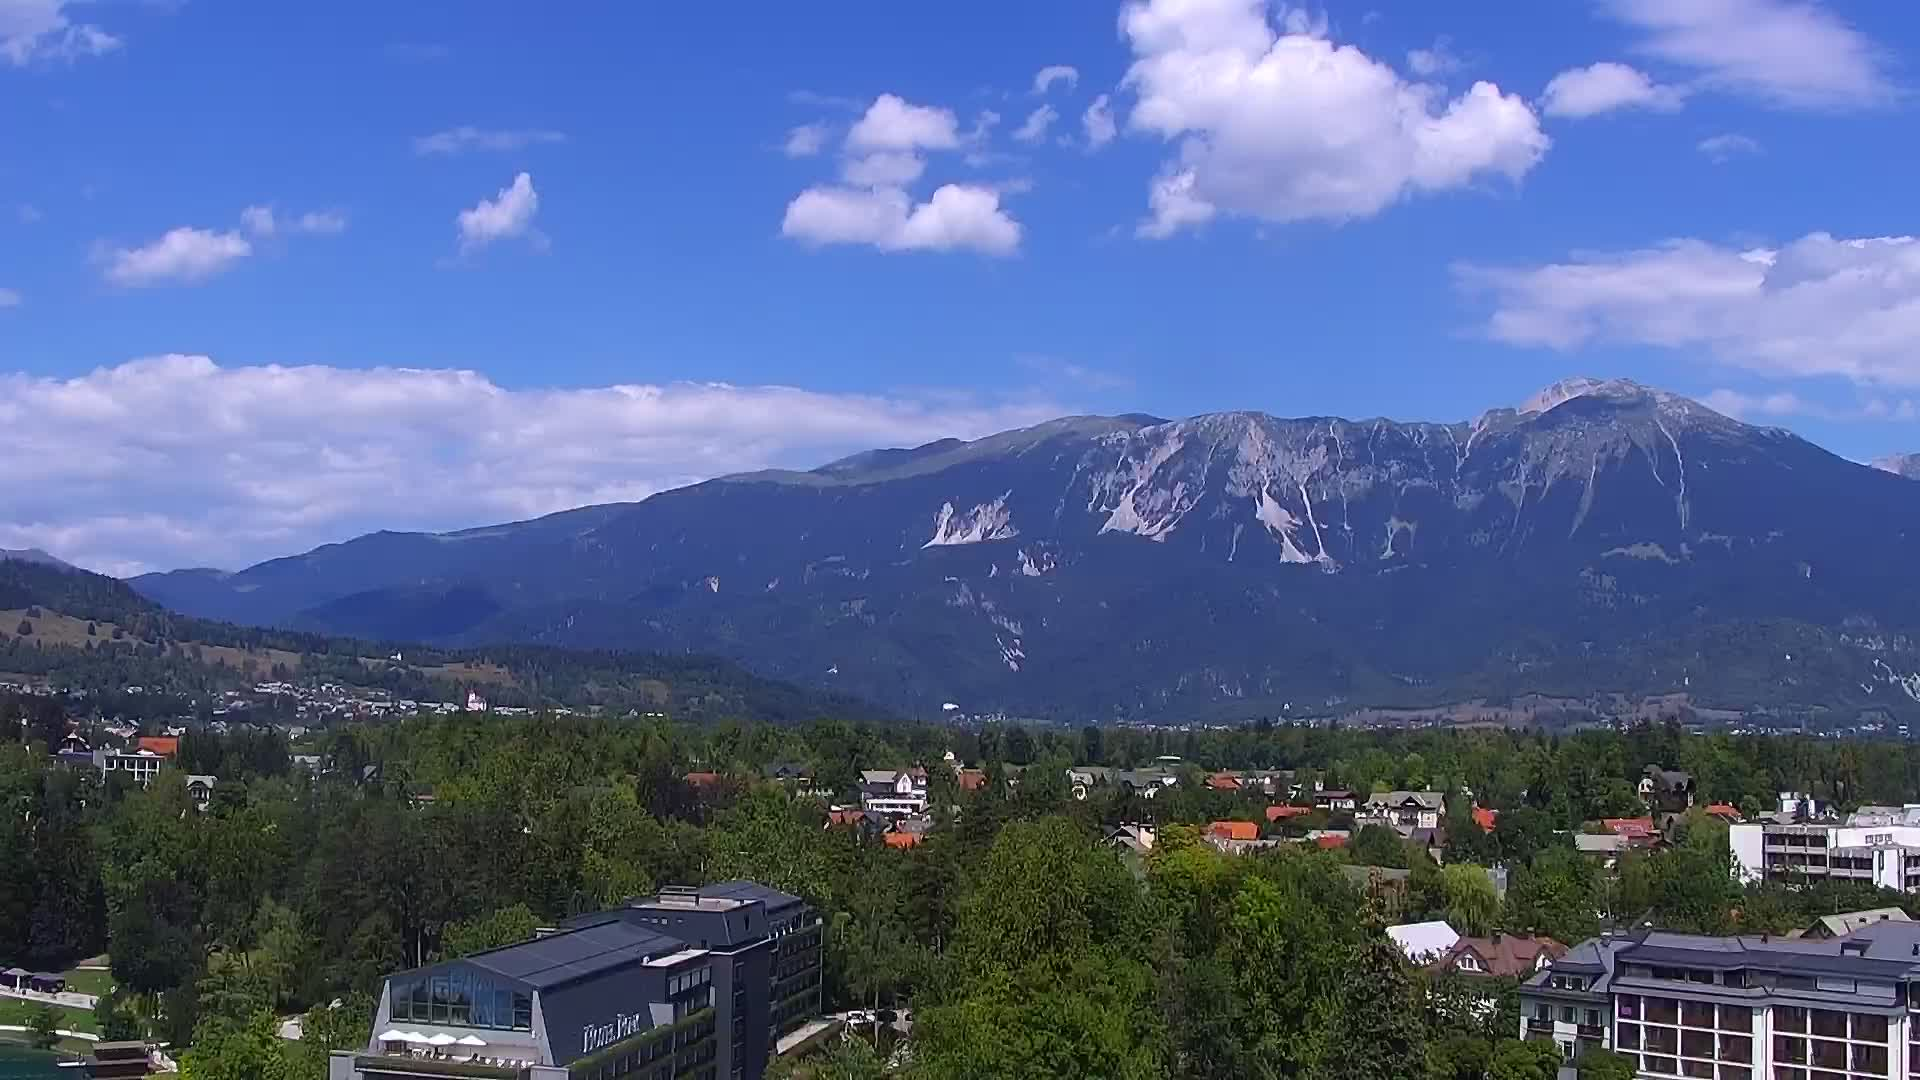 Bled Tue. 13:52